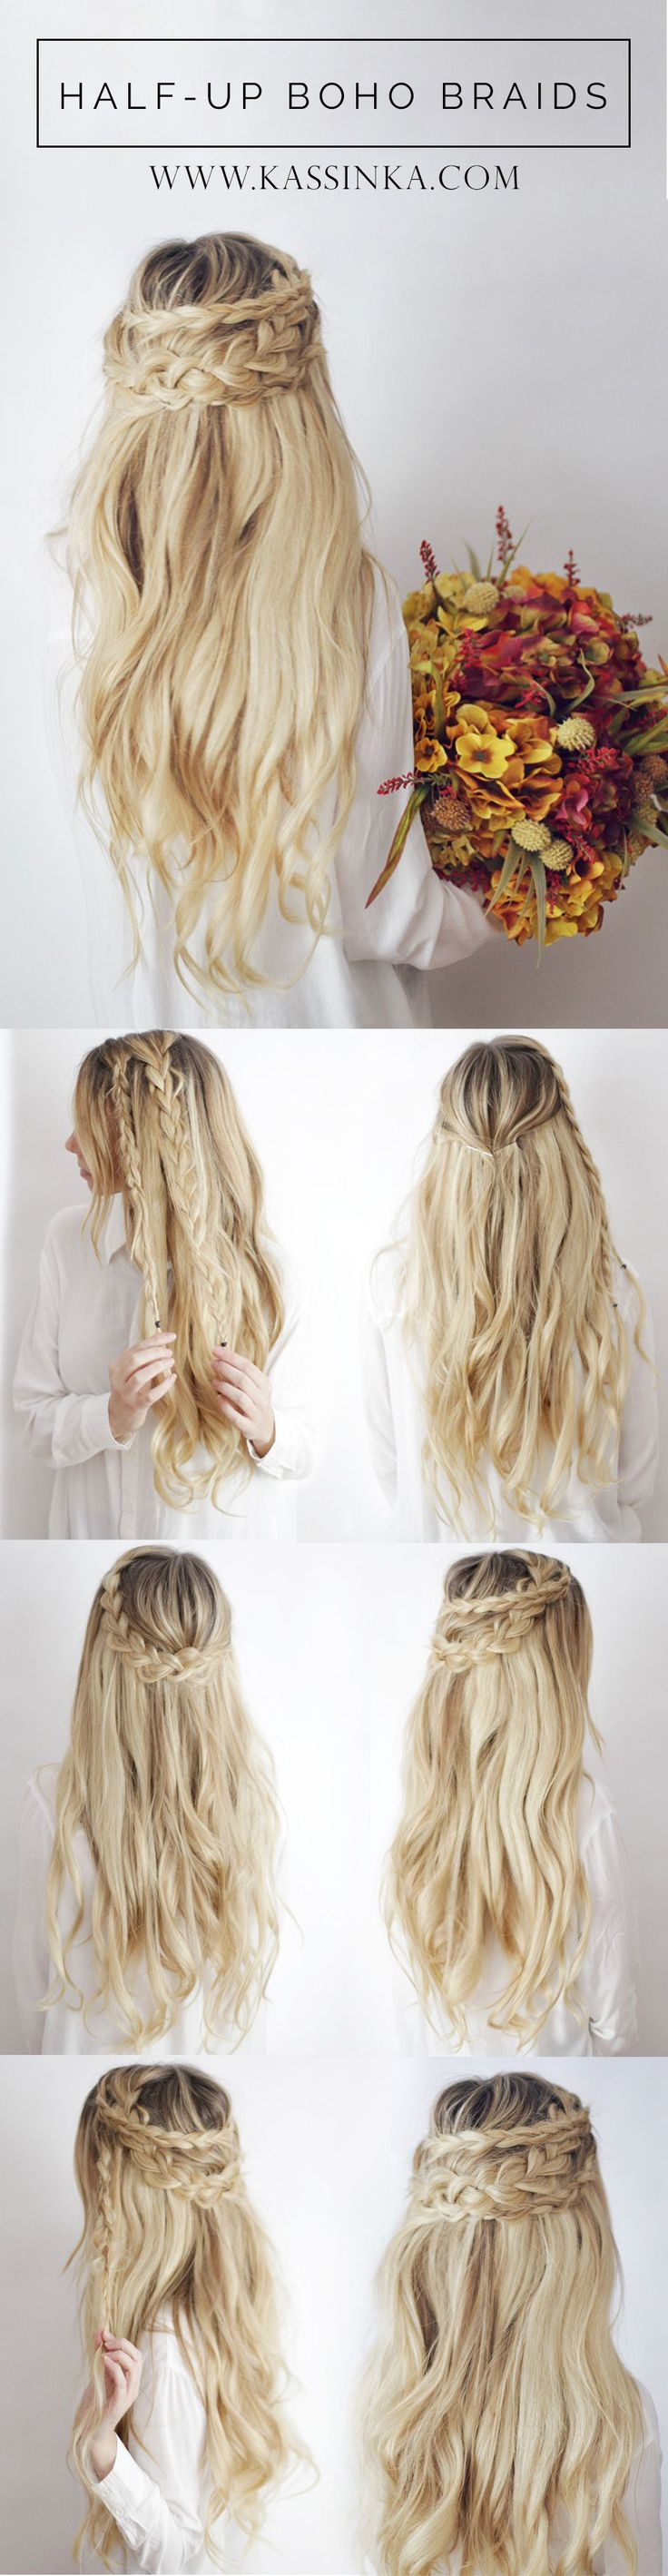 half-up boho braids bridal hair